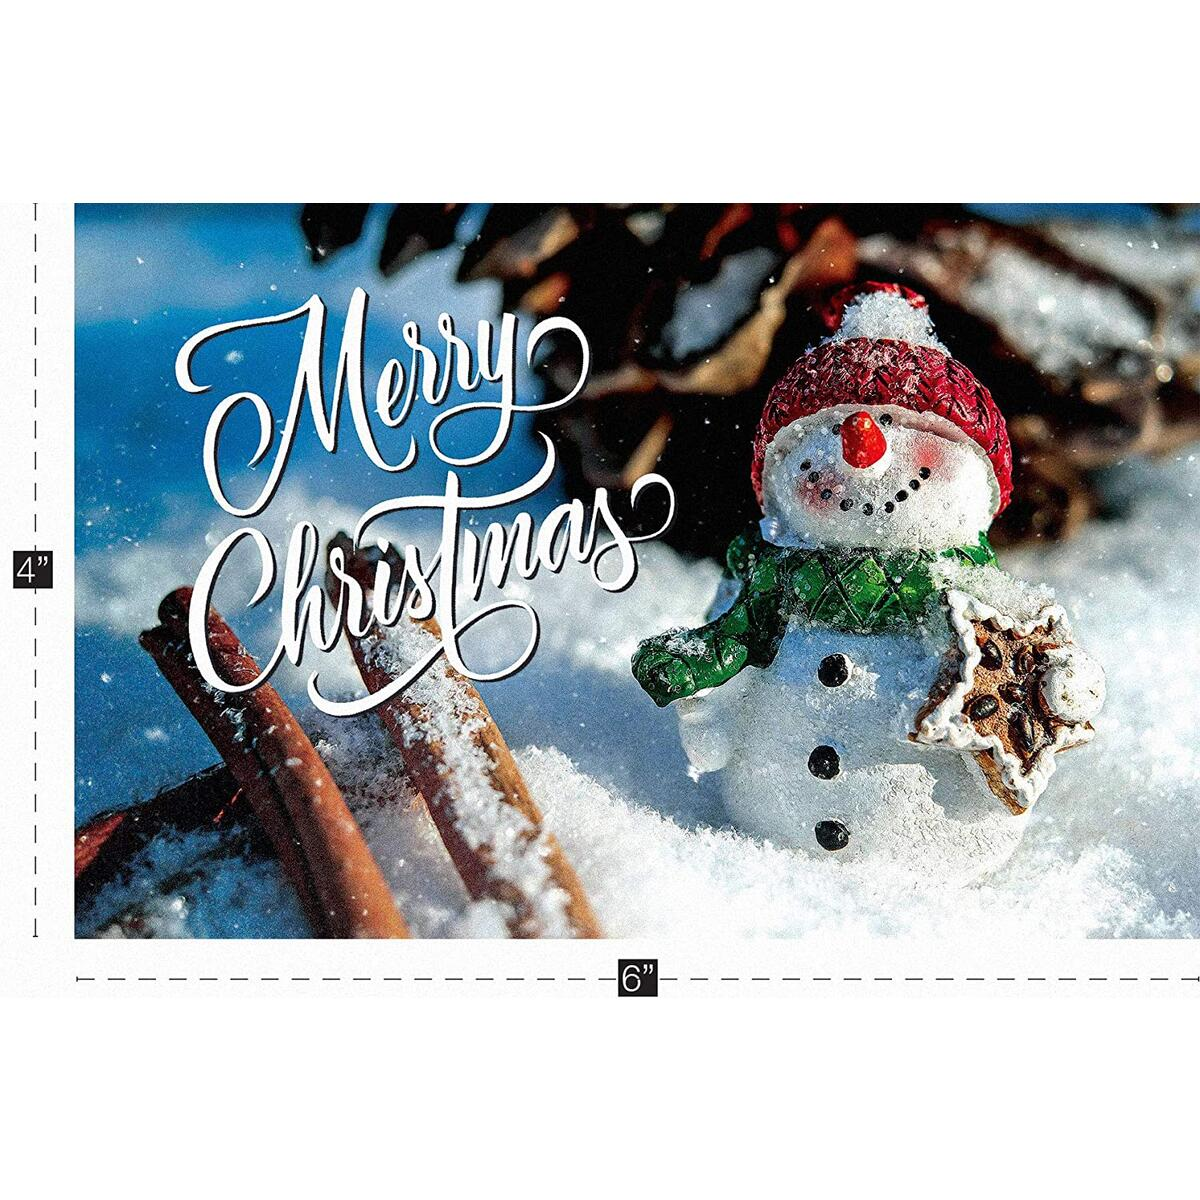 Merry Christmas Card Set Snowman Christmas Greeting Cards with Envelopes 18 Pack Elegant & Cute – Vintage, Country Farmhouse Happy Holiday/Seasons Greetings Box Pack 4x6: WHITE SNOWMAN DESIGN